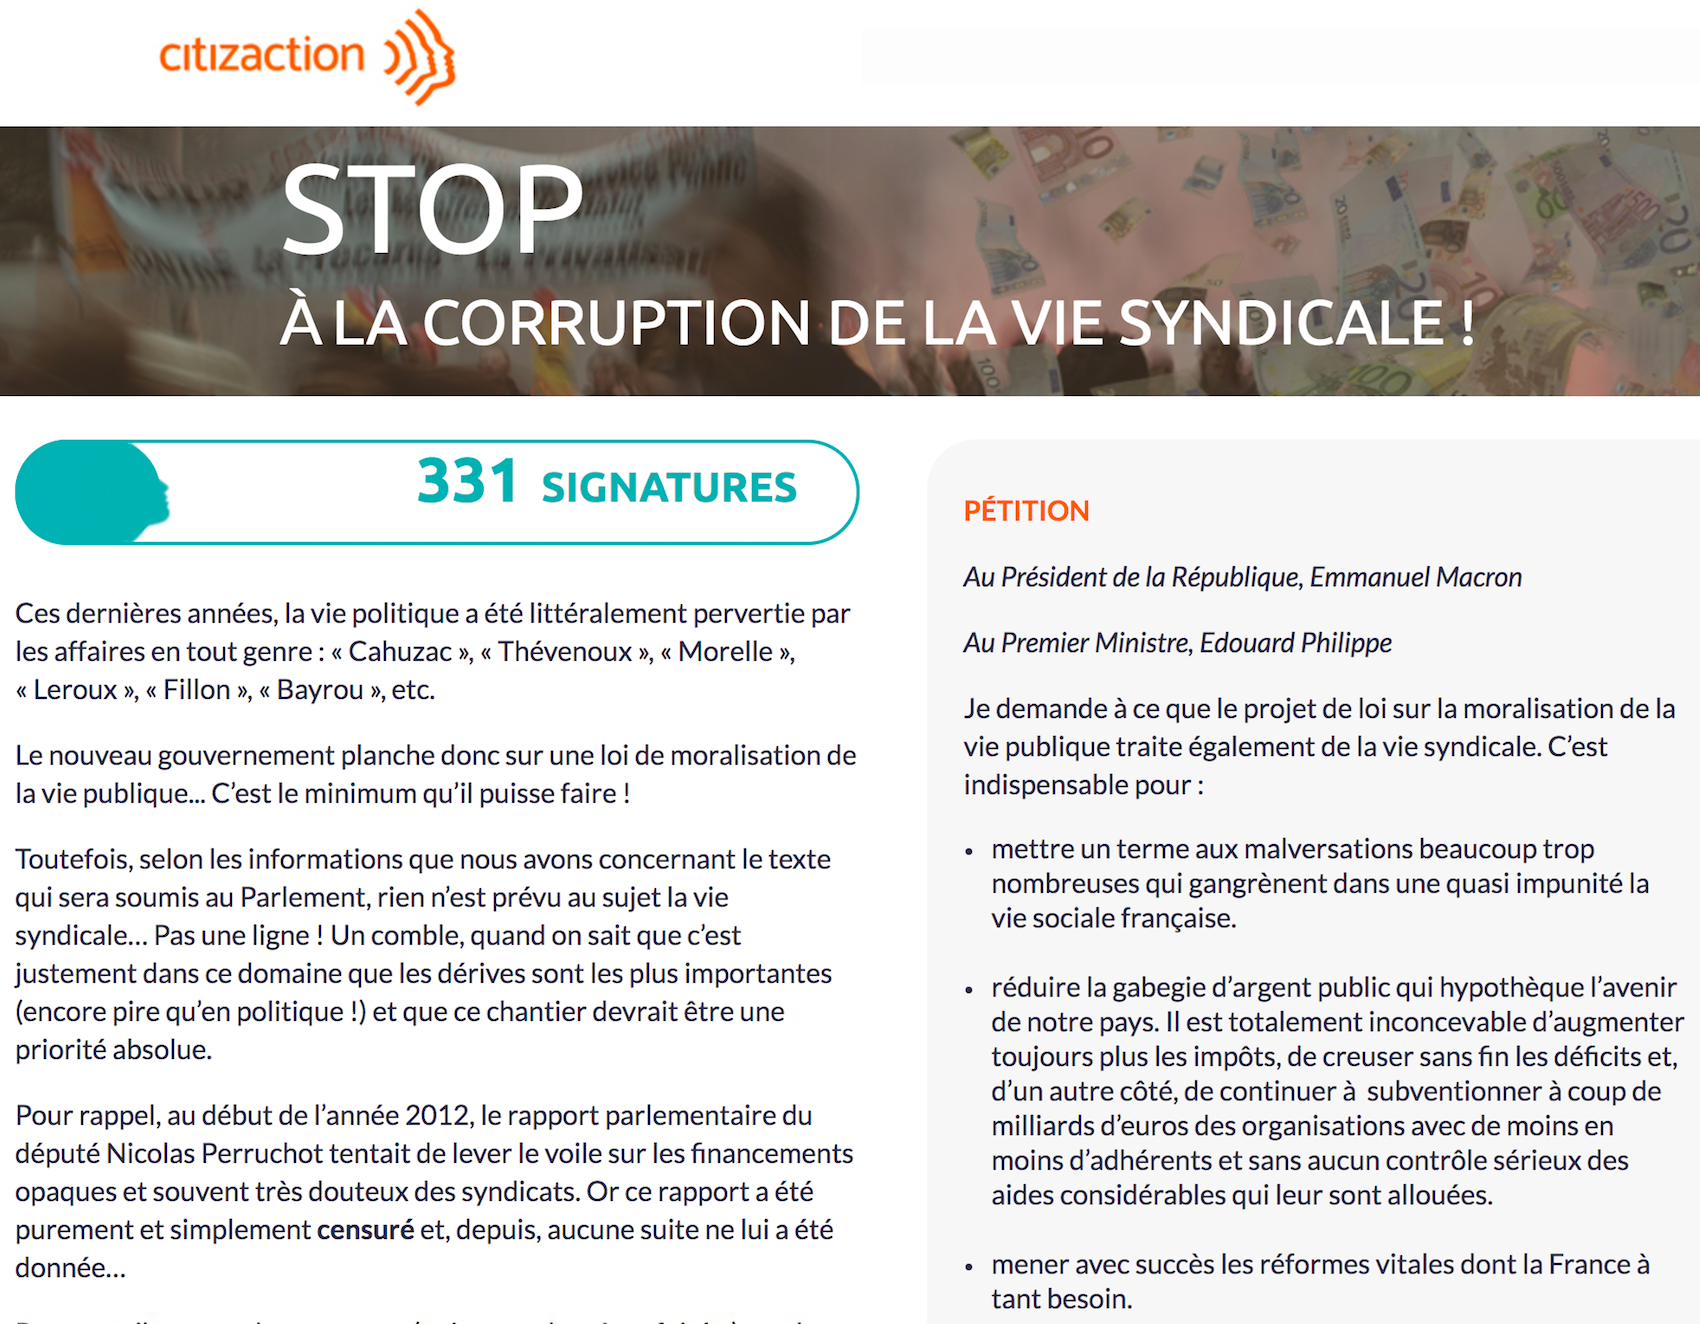 Citizaction Petition Corruption Syndicats